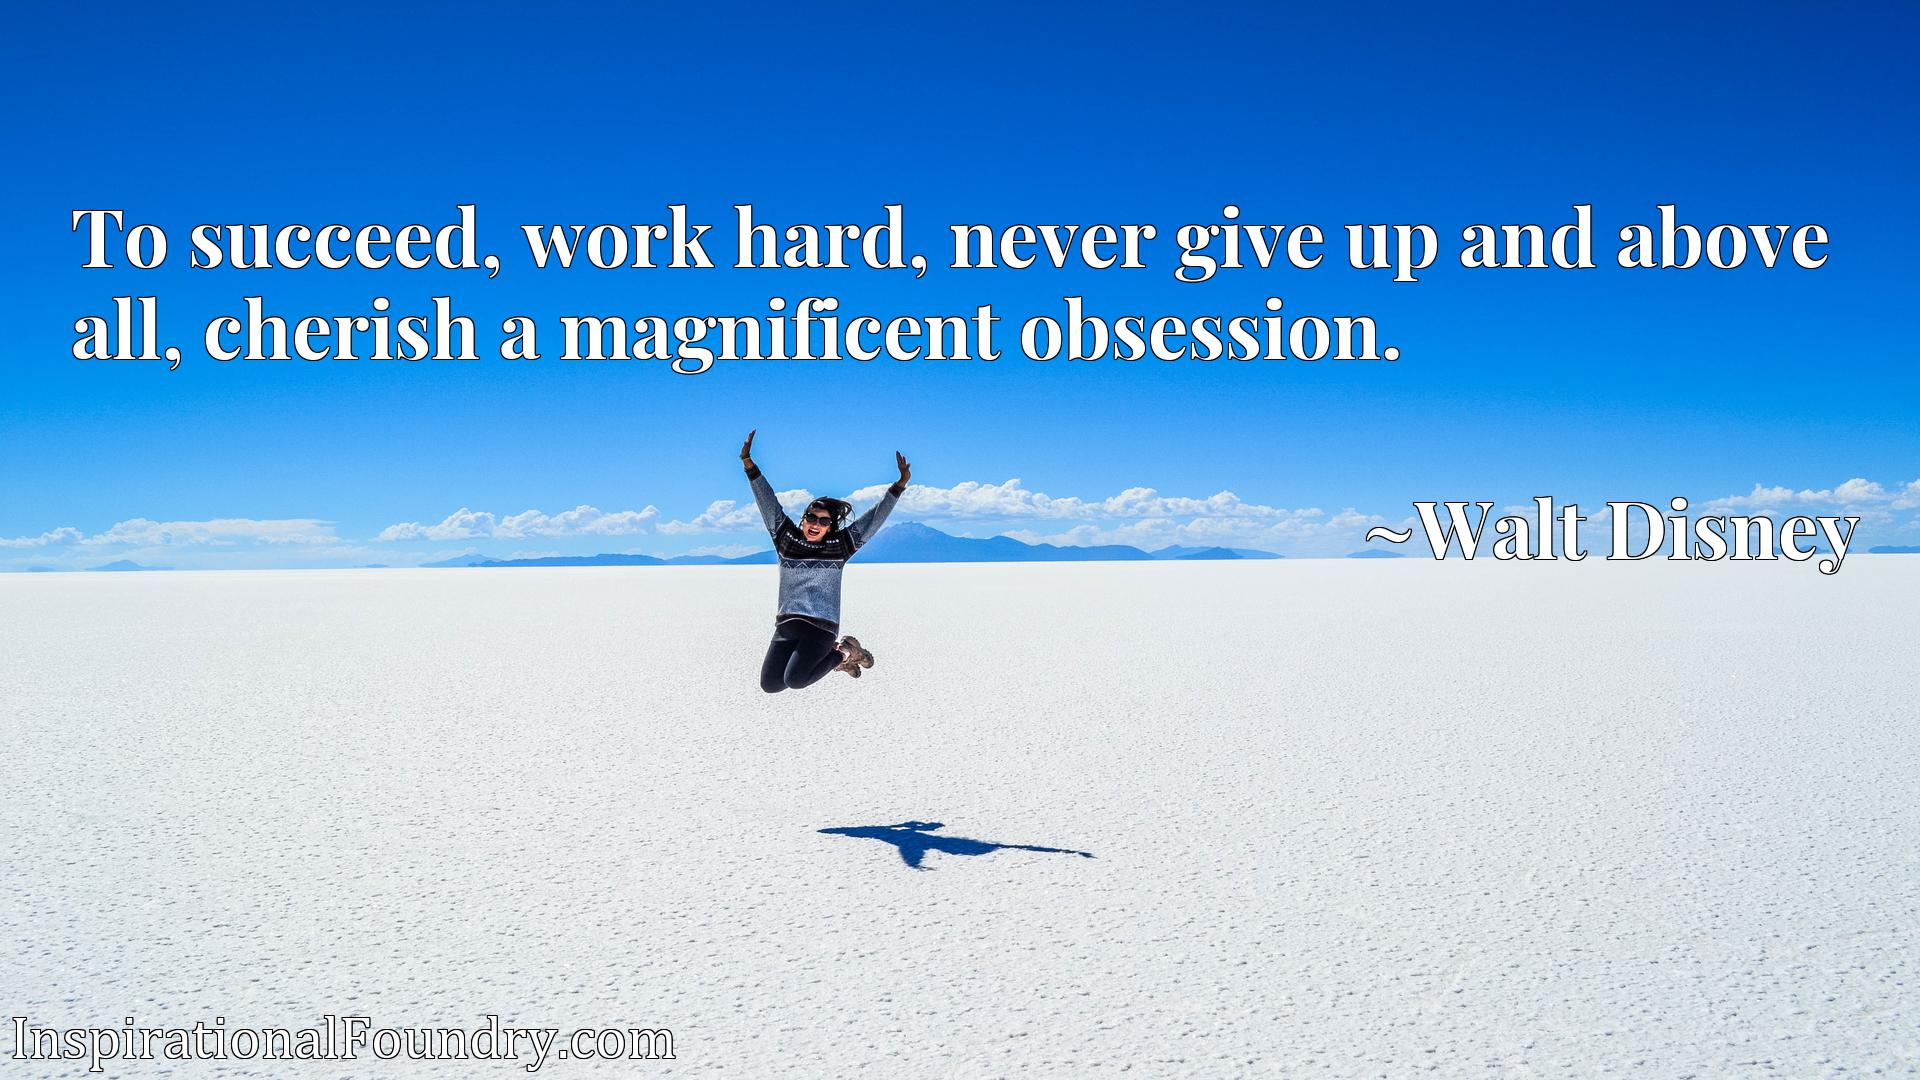 Quote Picture :To succeed, work hard, never give up and above all, cherish a magnificent obsession.